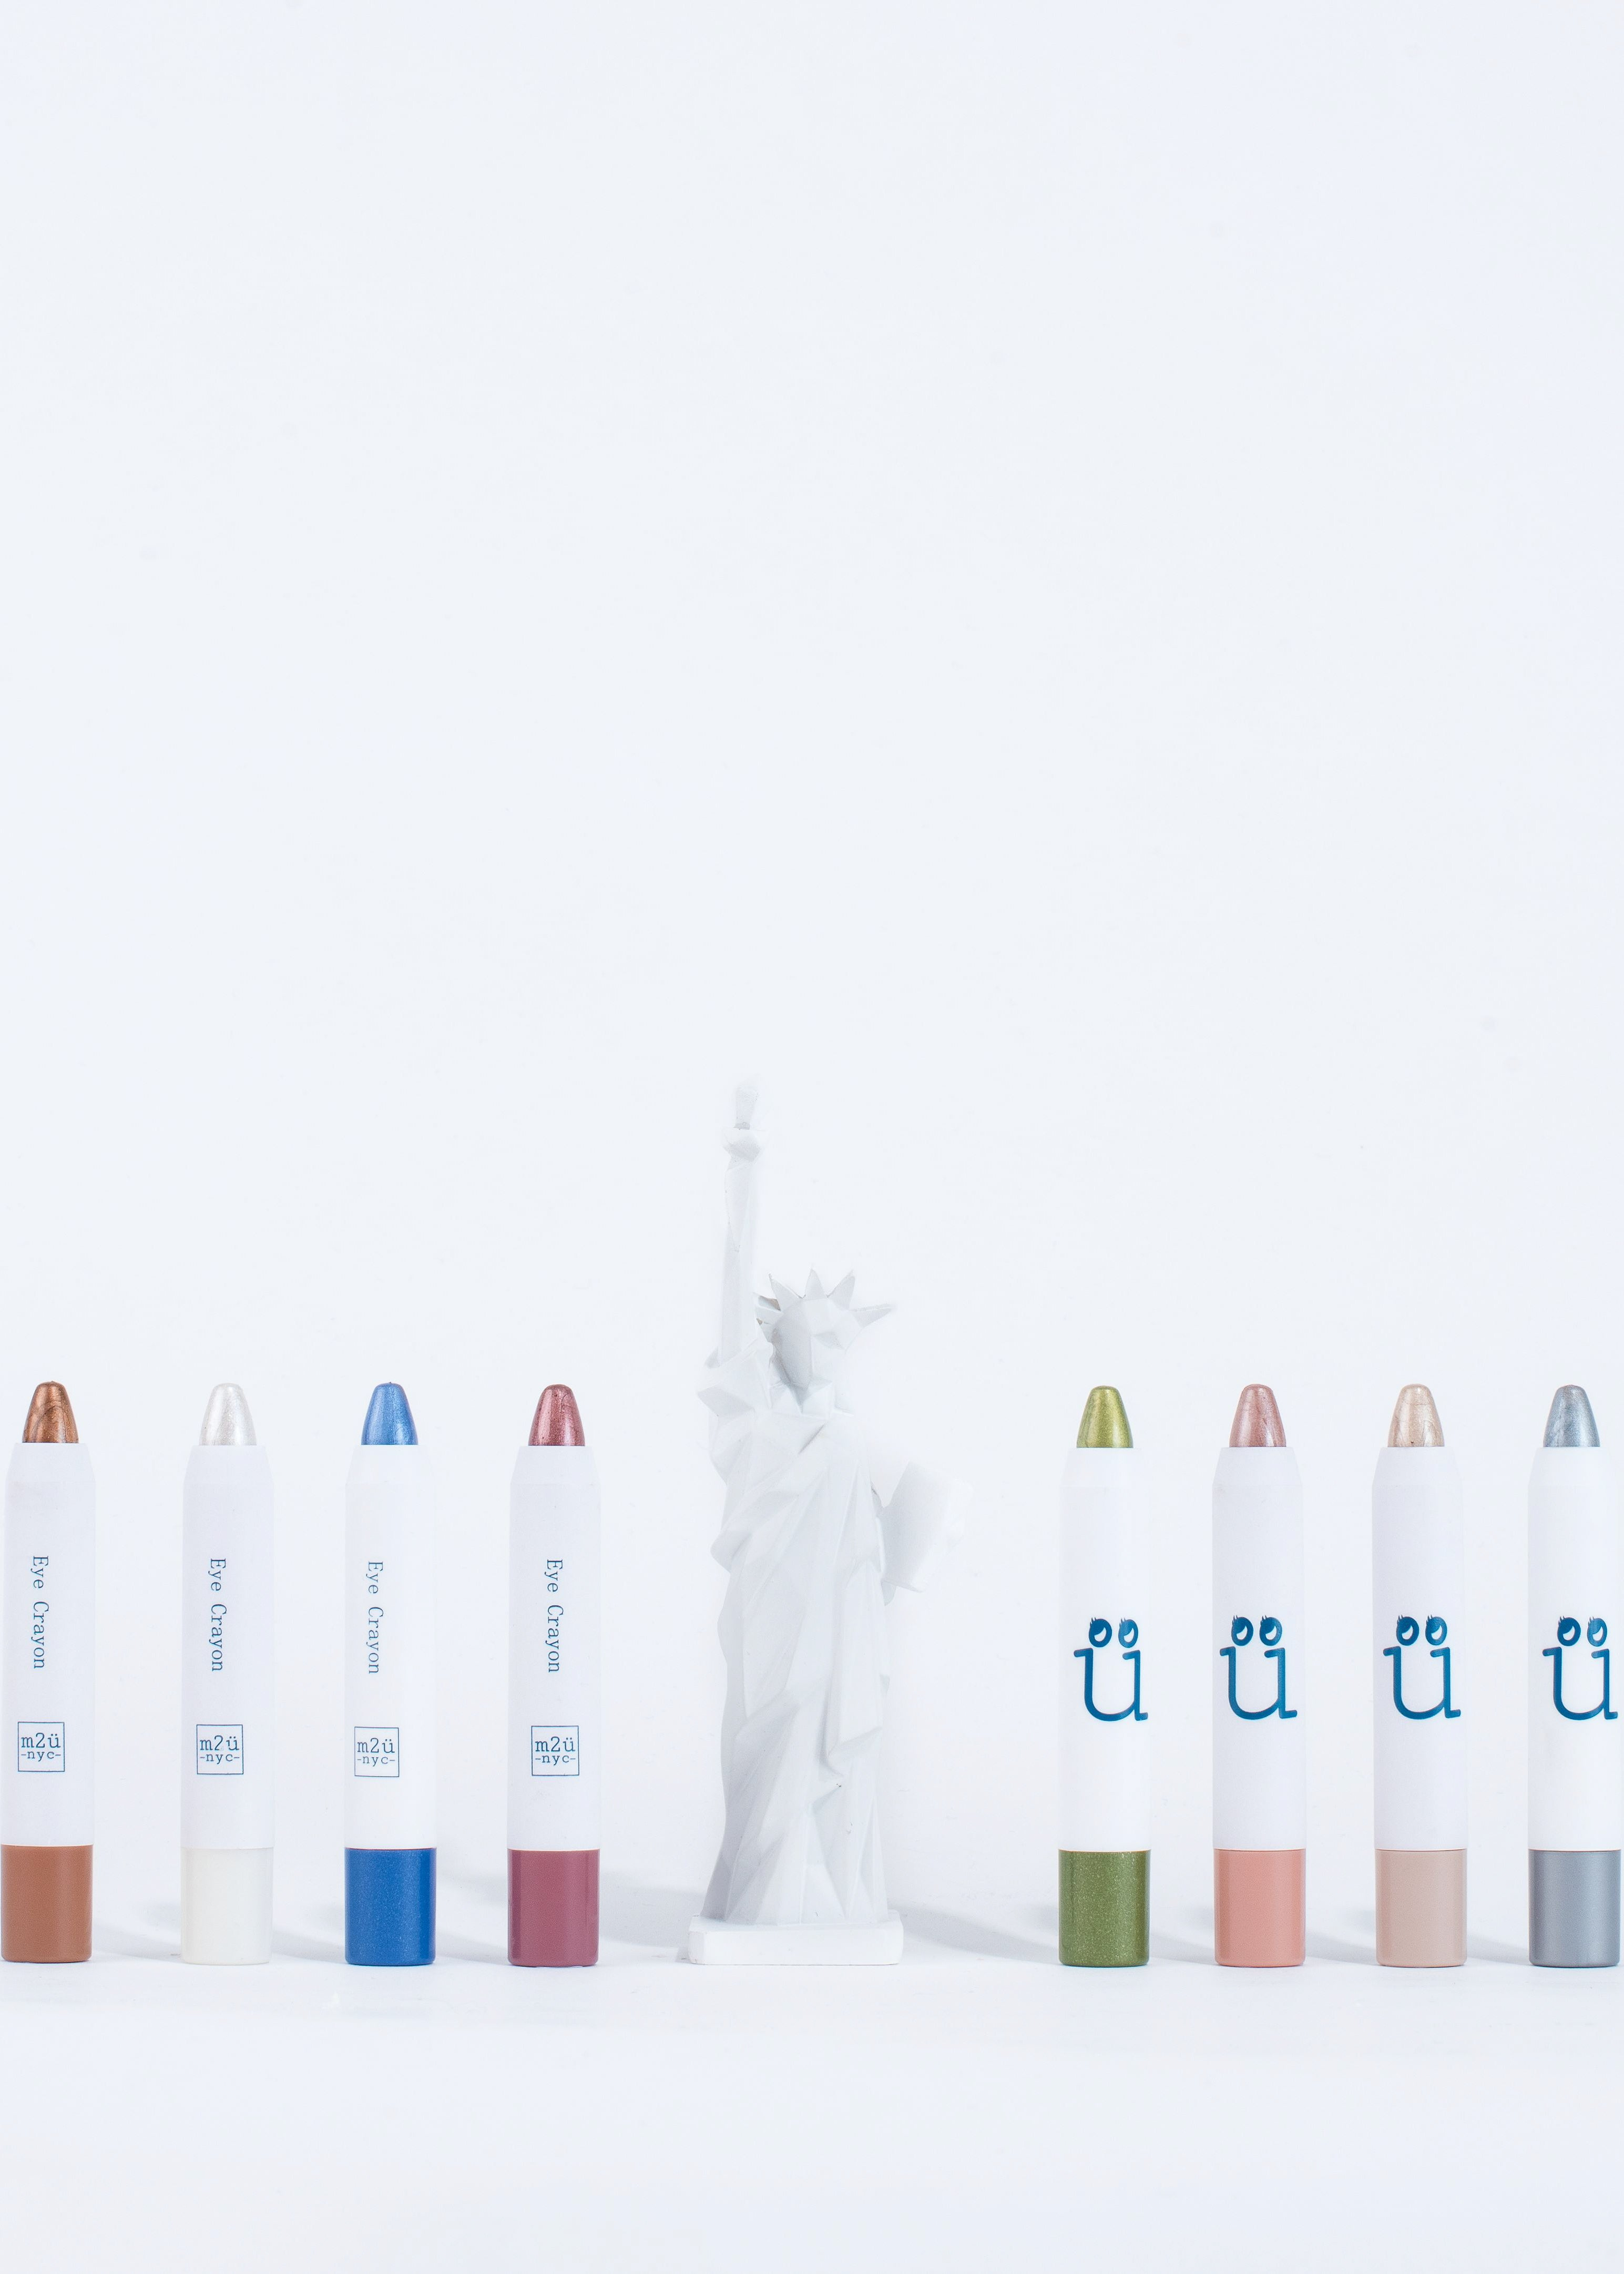 full collection of eye crayons aligning with statue of liberty